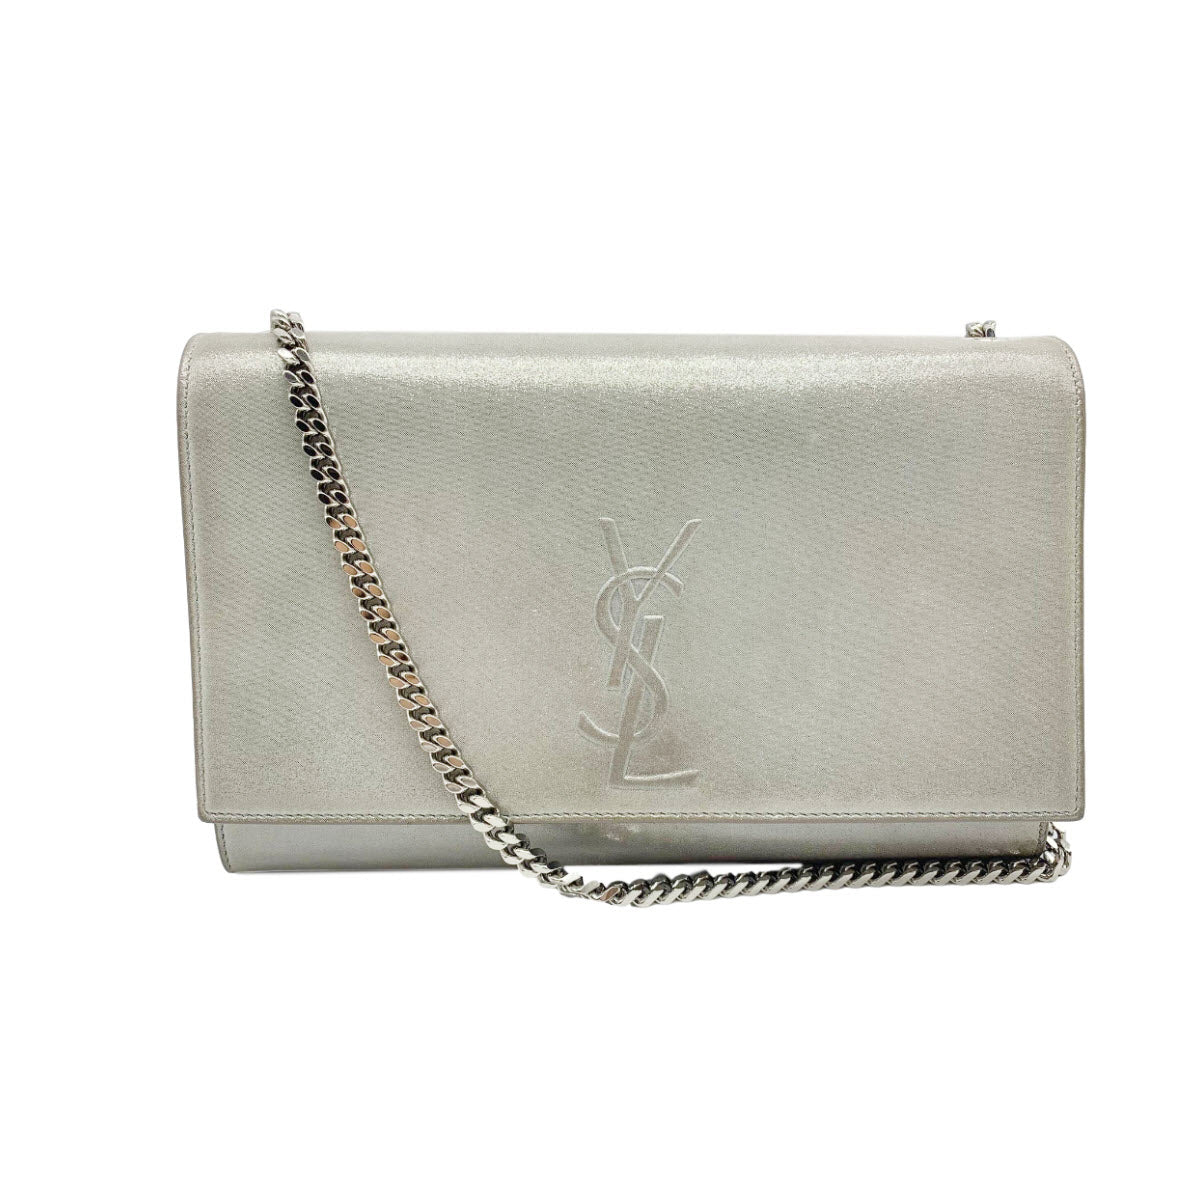 Saint Laurent Medium Kate Monogram Suede Silver Chain Crossbody $1990 YSL